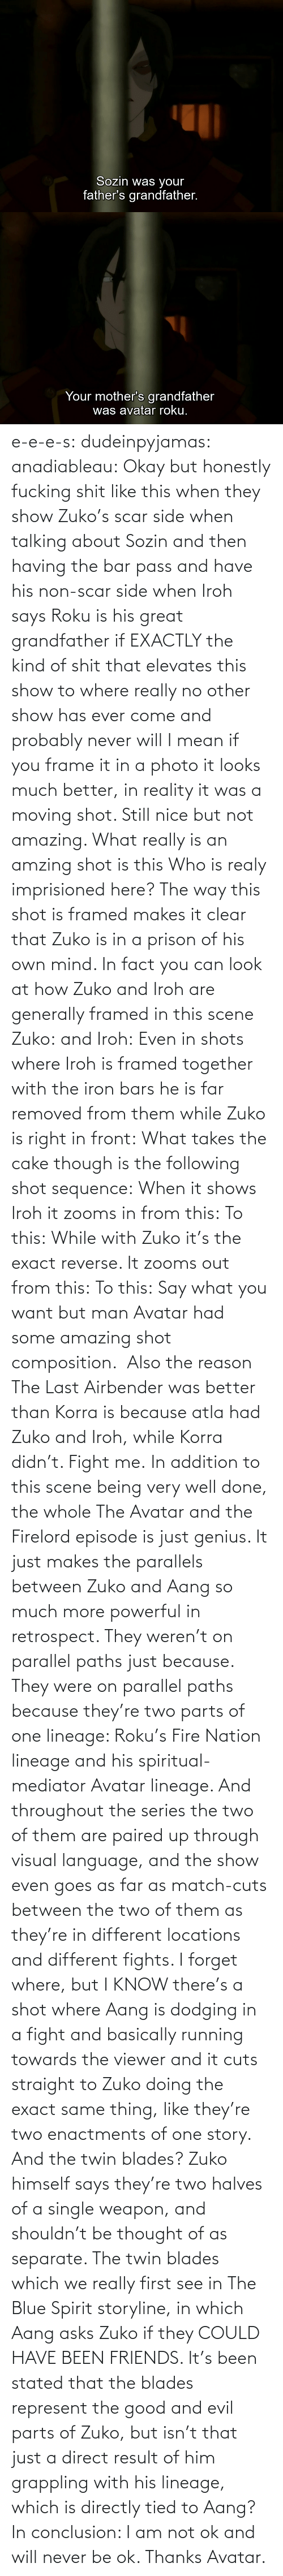 Kind: e-e-e-s: dudeinpyjamas:   anadiableau: Okay but honestly fucking shit like this when they show Zuko's scar side when talking about Sozin and then having the bar pass and have his non-scar side when Iroh says Roku is his great grandfather if EXACTLY the kind of shit that elevates this show to where really no other show has ever come and probably never will I mean if you frame it in a photo it looks much better, in reality it was a moving shot. Still nice but not amazing. What really is an amzing shot is this Who is realy imprisioned here? The way this shot is framed makes it clear that Zuko is in a prison of his own mind. In fact you can look at how Zuko and Iroh are generally framed in this scene Zuko: and Iroh: Even in shots where Iroh is framed together with the iron bars he is far removed from them while Zuko is right in front:  What takes the cake though is the following shot sequence: When it shows Iroh it zooms in from this: To this: While with Zuko it's the exact reverse. It zooms out from this: To this: Say what you want but man Avatar had some amazing shot composition.   Also the reason The Last Airbender was better than Korra is because atla had Zuko and Iroh, while Korra didn't. Fight me.    In addition to this scene being very well done, the whole The Avatar and the Firelord episode is just genius.  It just makes the parallels between Zuko and Aang so much more powerful in retrospect.  They weren't on parallel paths just because.  They were on parallel paths because they're two parts of one lineage: Roku's Fire Nation lineage and his spiritual-mediator Avatar lineage.  And throughout the series the two of them are paired up through visual language, and the show even goes as far as match-cuts between the two of them as they're in different locations and different fights.  I forget where, but I KNOW there's a shot where Aang is dodging in a fight and basically running towards the viewer and it cuts straight to Zuko doing the exact same thing, like they're two enactments of one story.   And the twin blades?  Zuko himself says they're two halves of a single weapon, and shouldn't be thought of as separate.  The twin blades which we really first see in The Blue Spirit storyline, in which Aang asks Zuko if they COULD HAVE BEEN FRIENDS.  It's been stated that the blades represent the good and evil parts of Zuko, but isn't that just a direct result of him grappling with his lineage, which is directly tied to Aang? In conclusion: I am not ok and will never be ok.  Thanks Avatar.